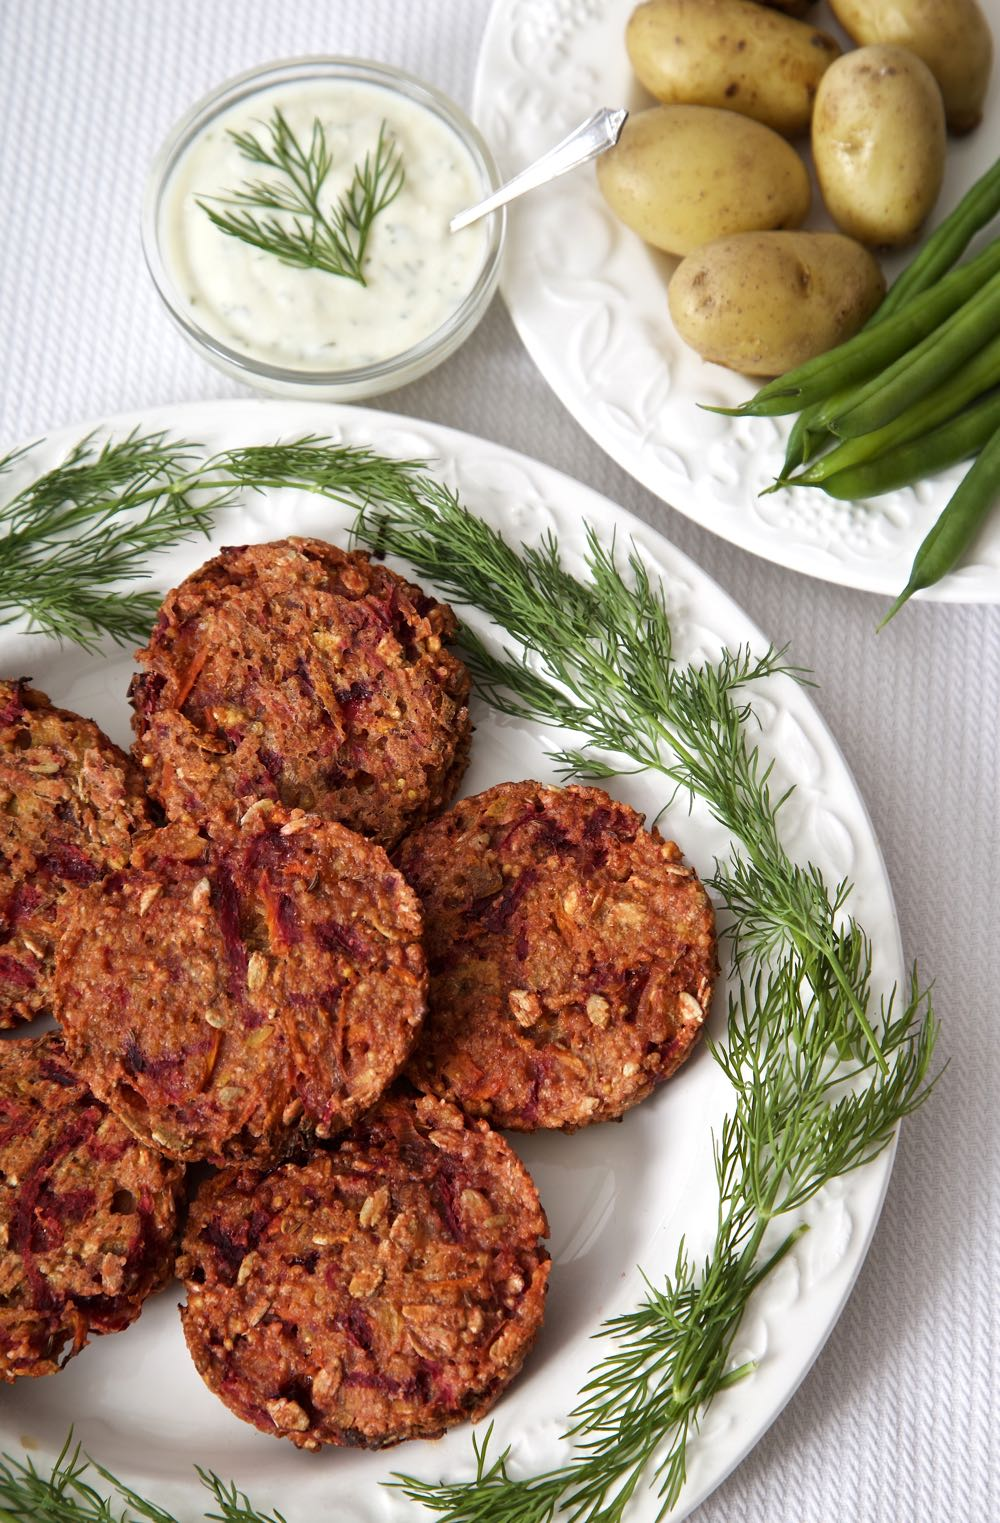 Millet Burgers - Delicious vegan burgers with millet and beetroot